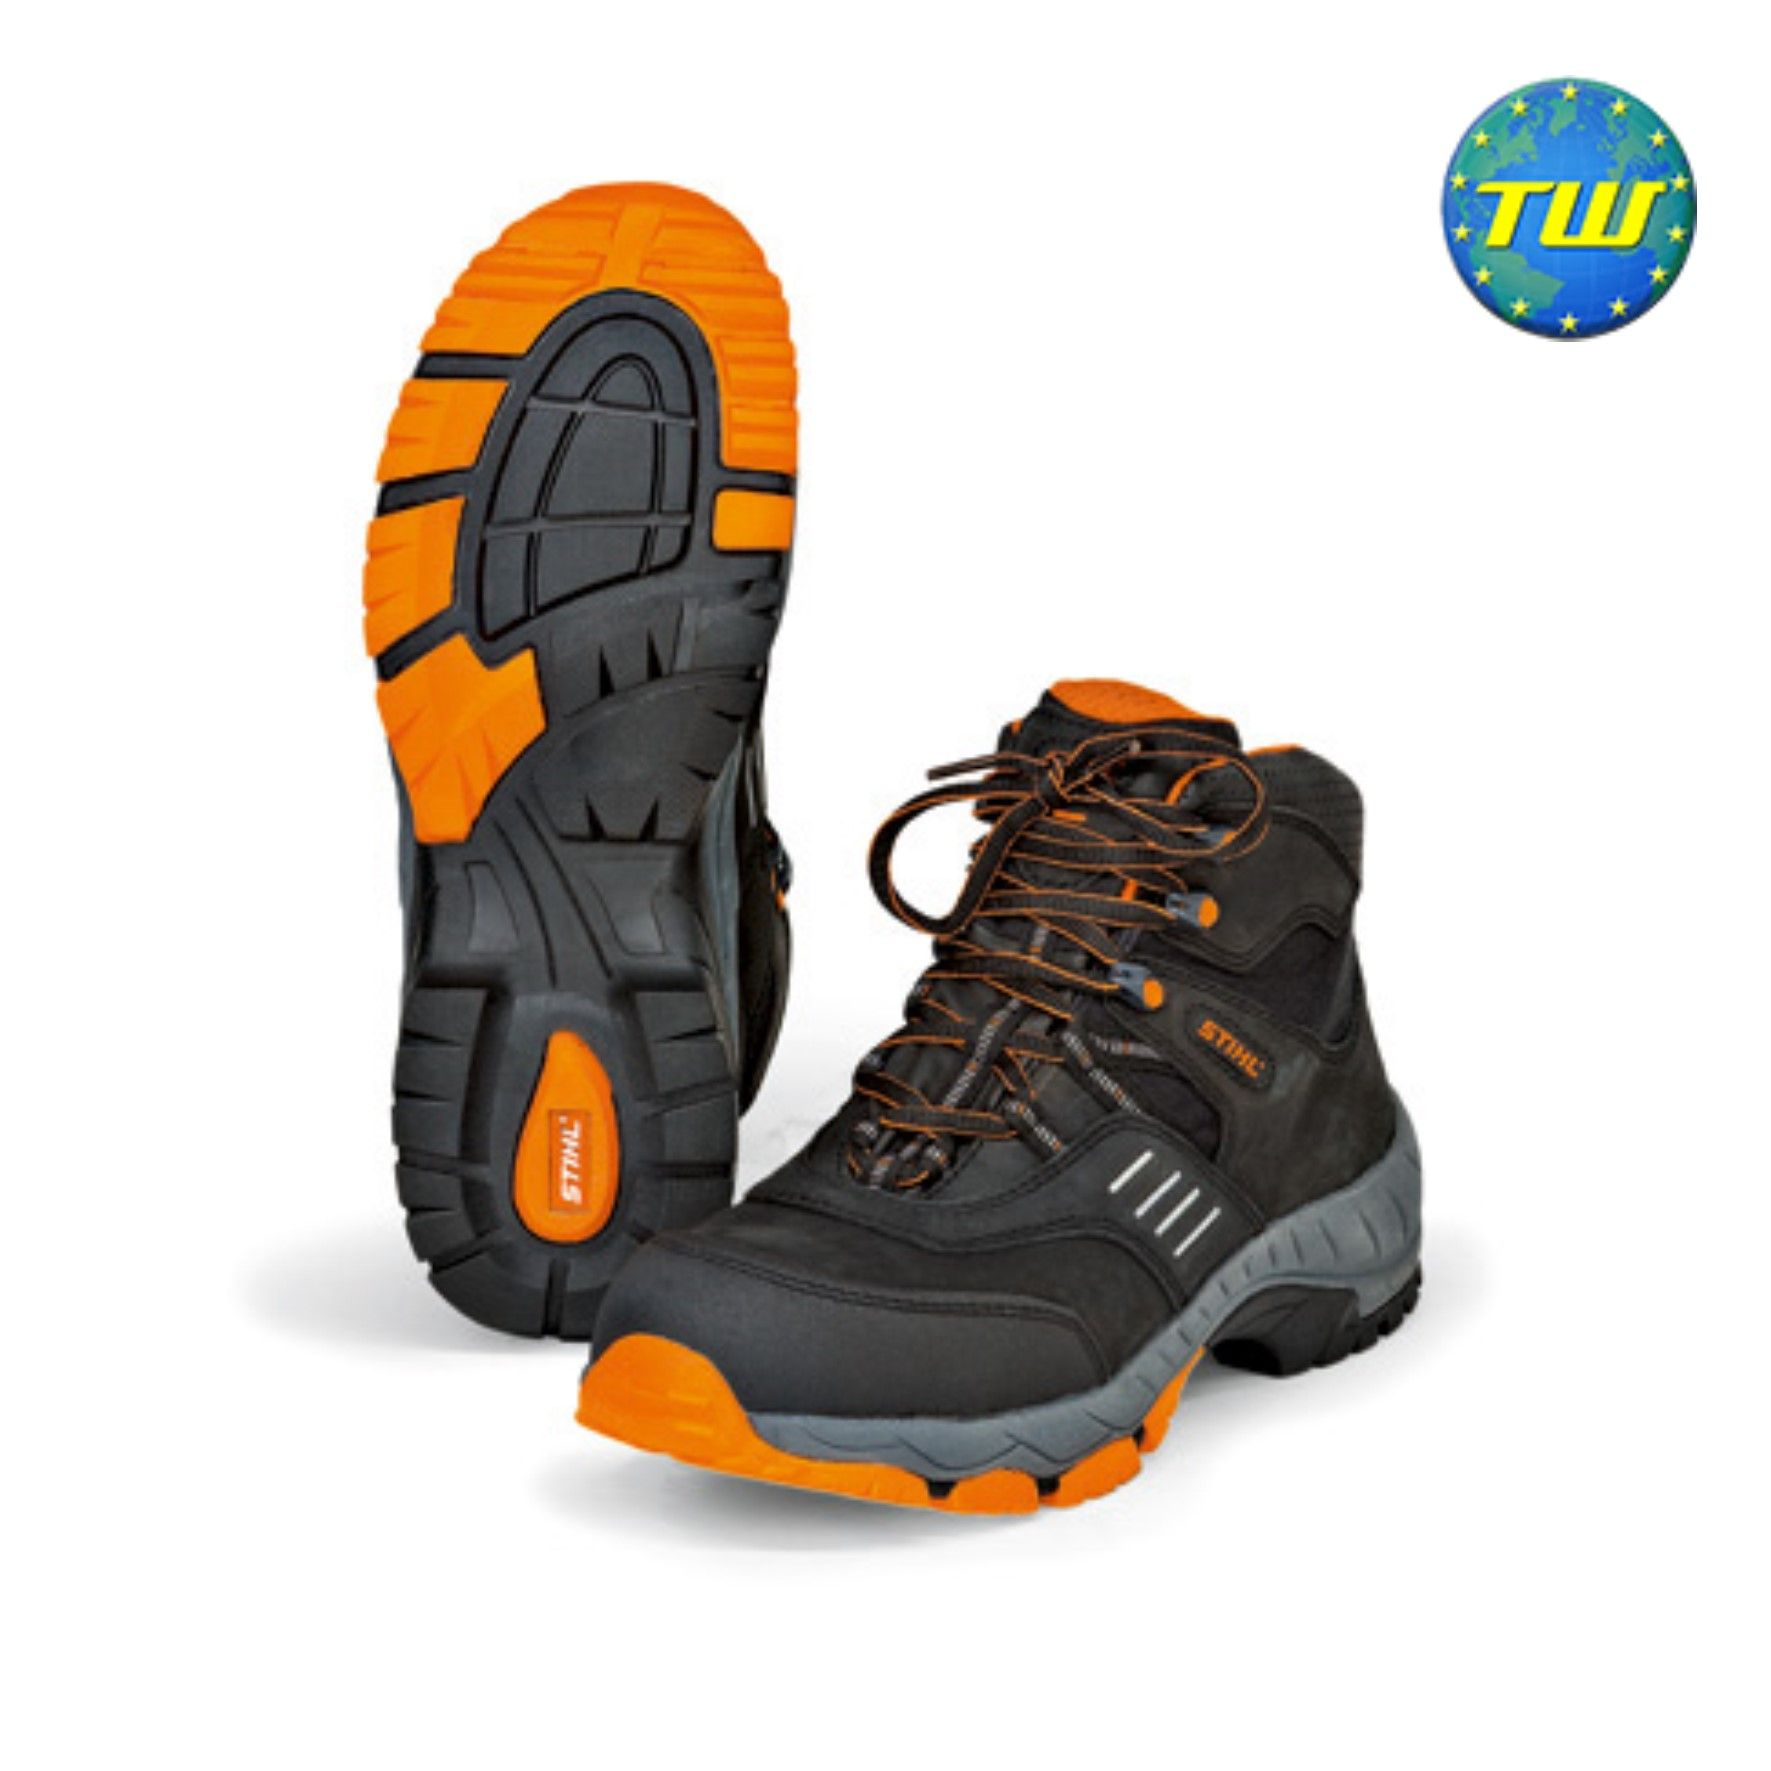 9ca48a18637 Pin by Clint Lindell on stihl tools in 2019   Boots, Steel toe boots ...